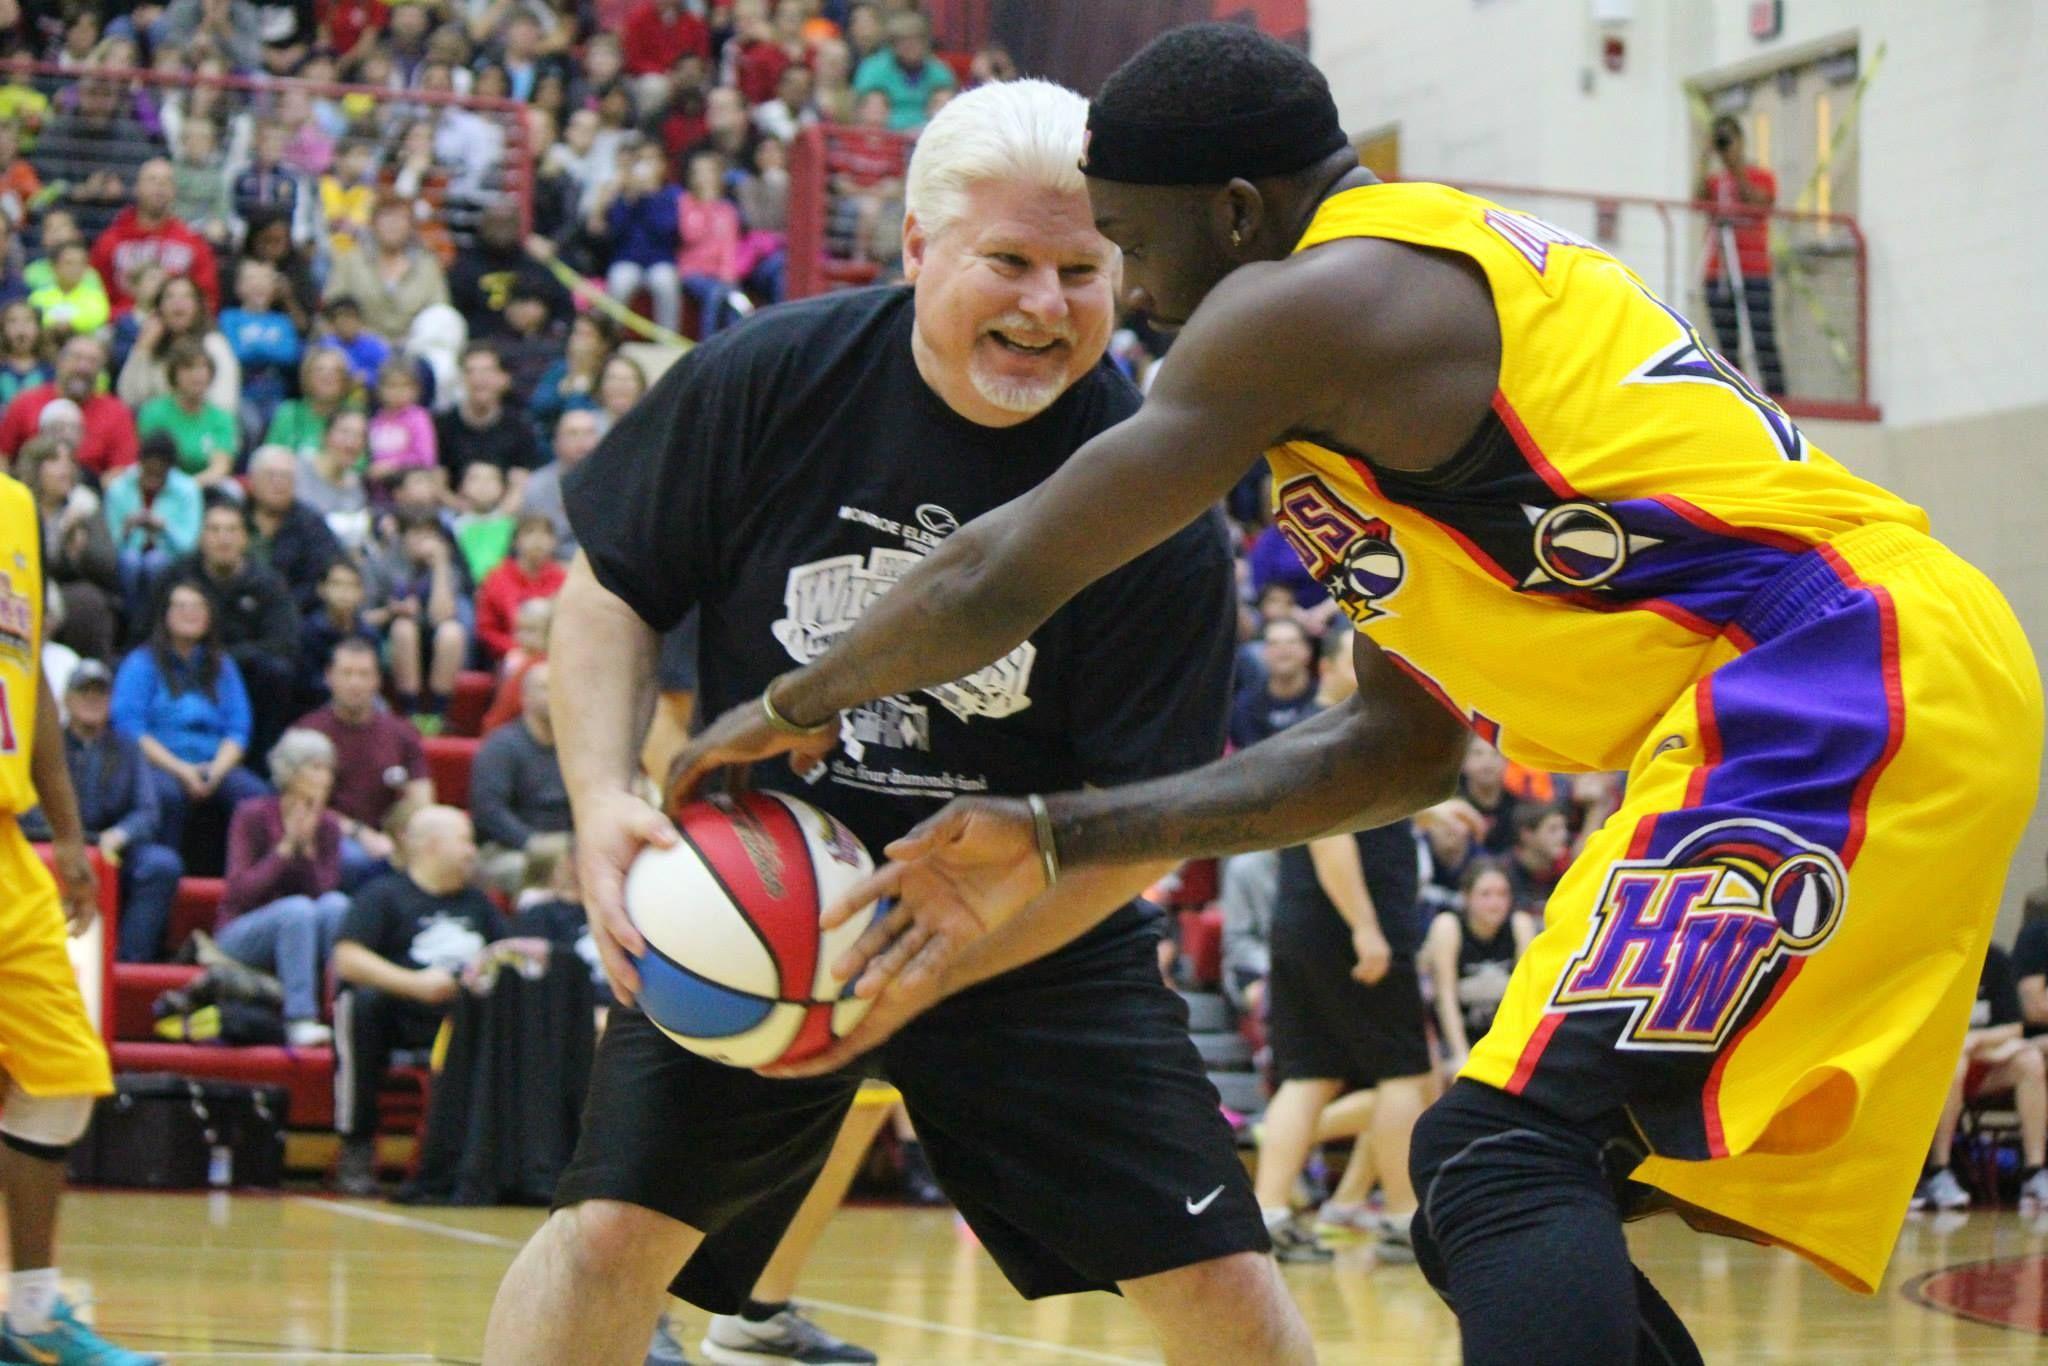 Students At Cumberland Valley High School Organized A Friendly Faculty Vs Harlem Wizards Basketball Game To Be High School Organization Upcoming Events Harlem